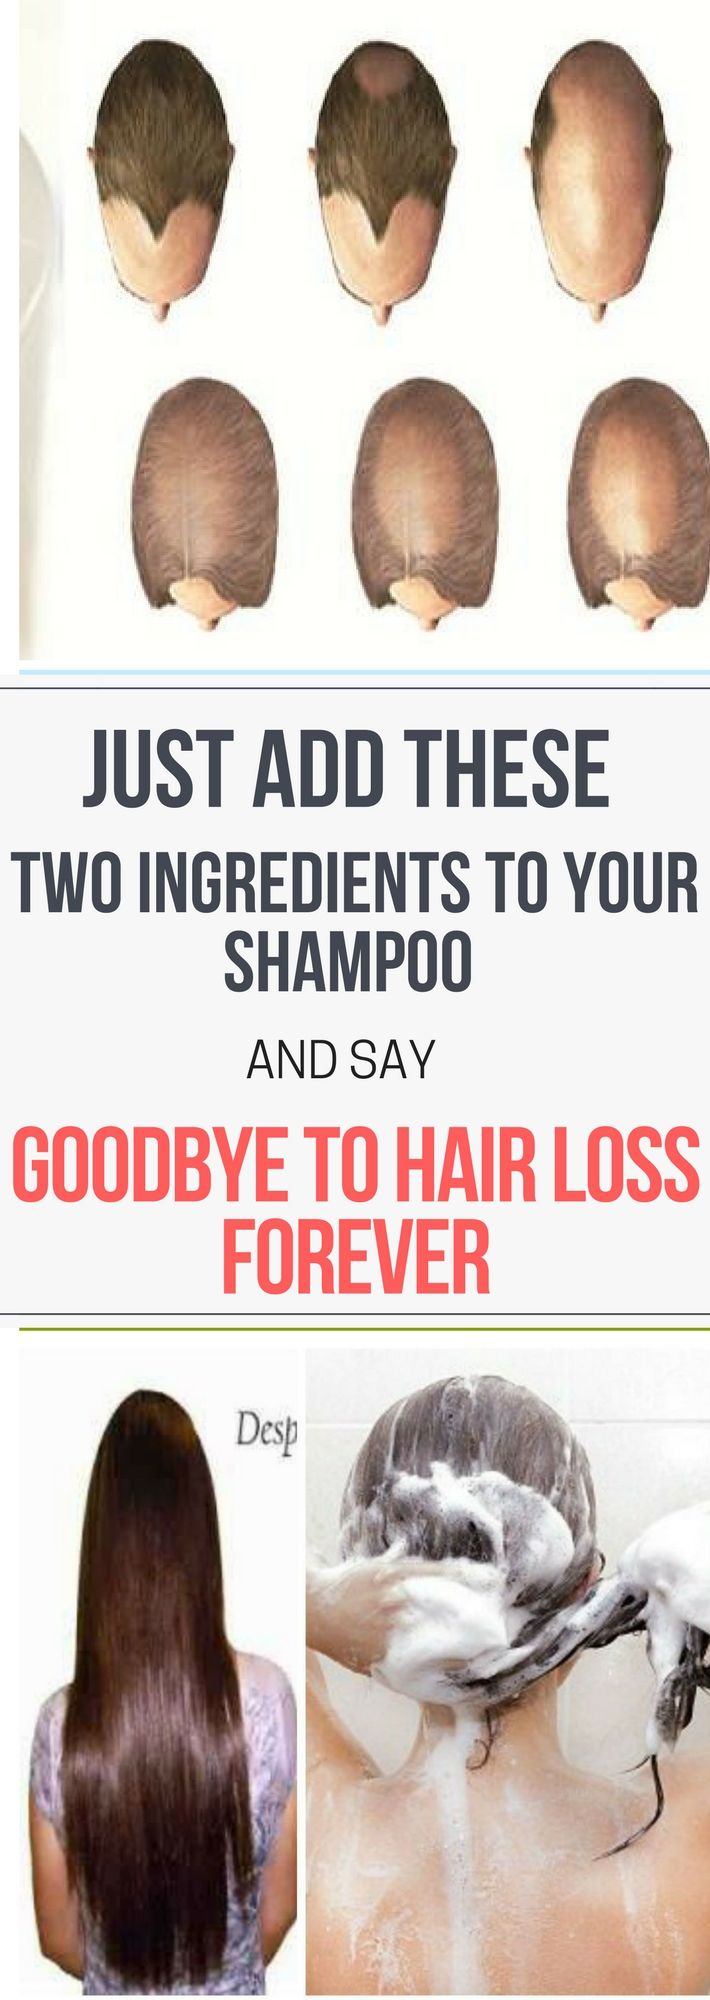 Just Add These Two Ingredients To Your Shampoo And Say Goodbye To Hair Loss!!